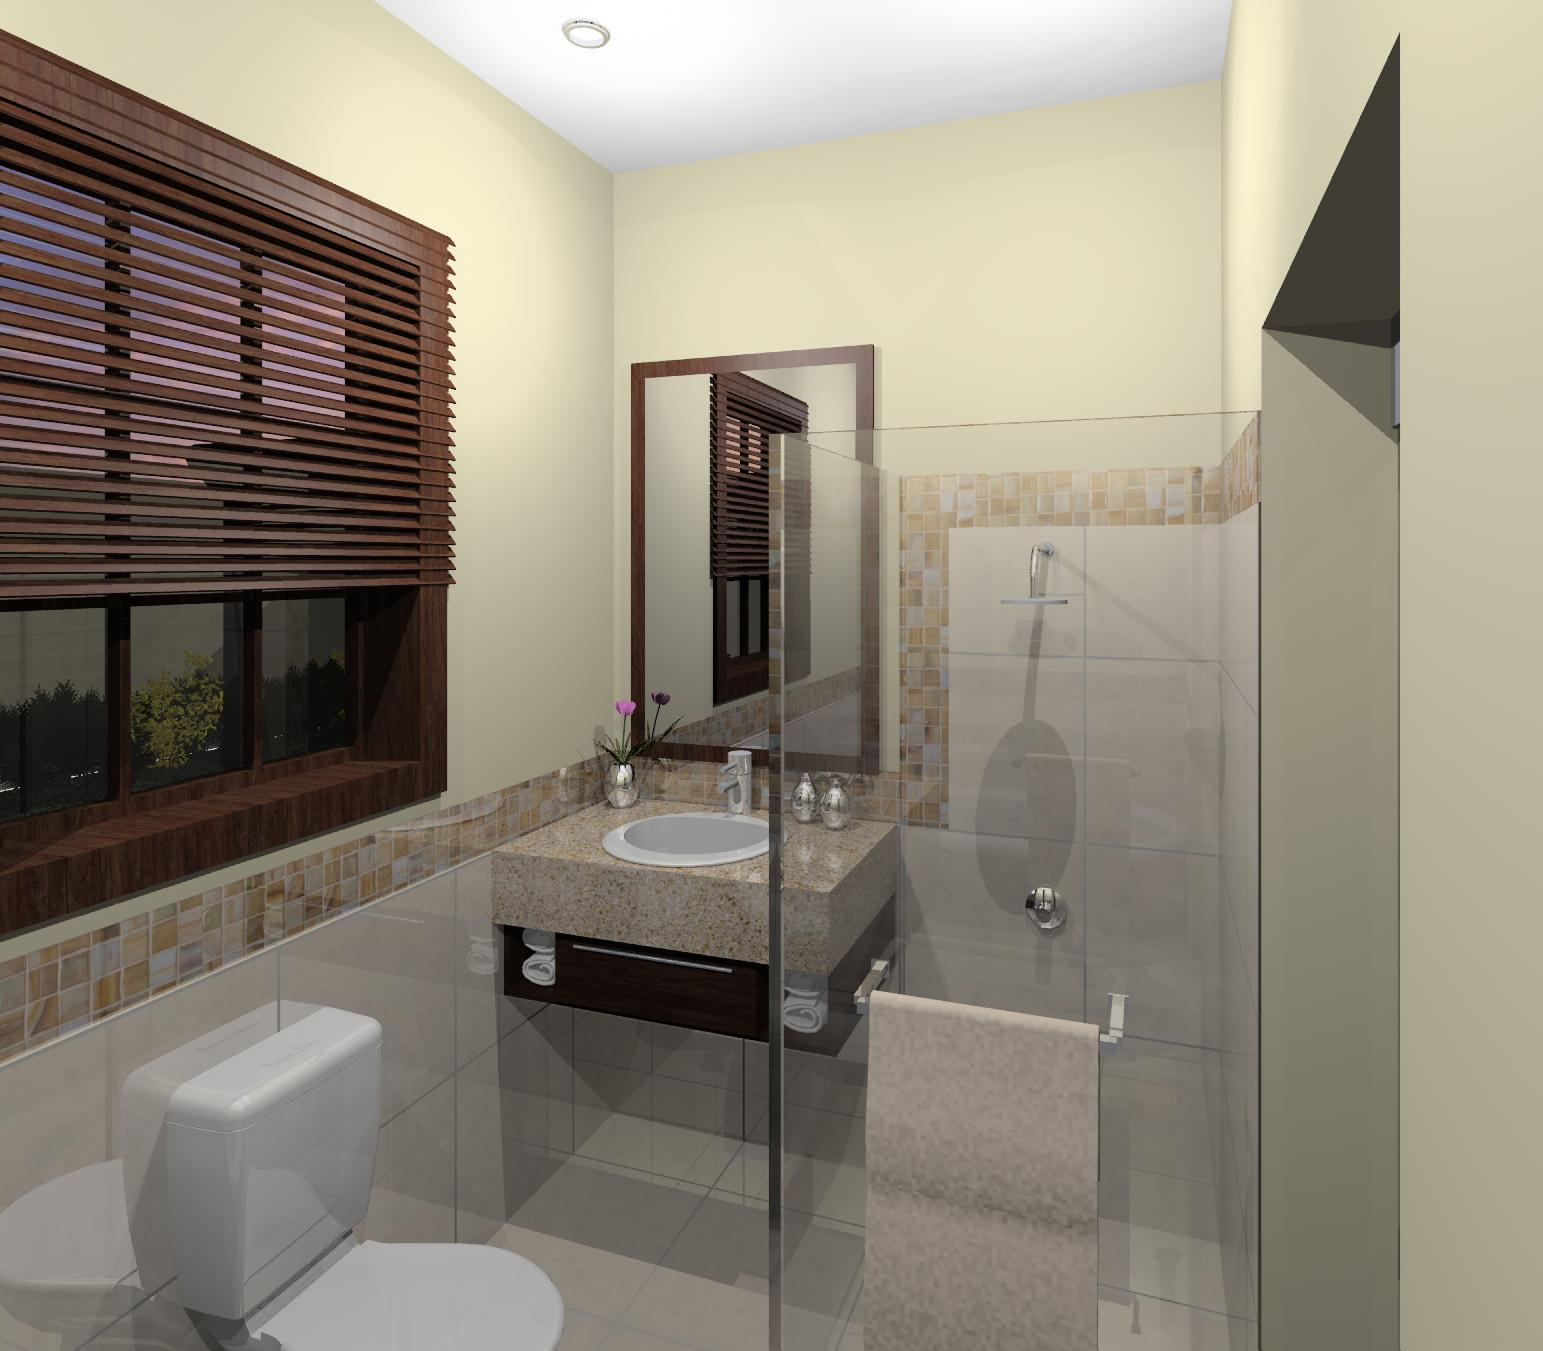 3d renderings by knoesen rene at for Bathroom design 12 x 8